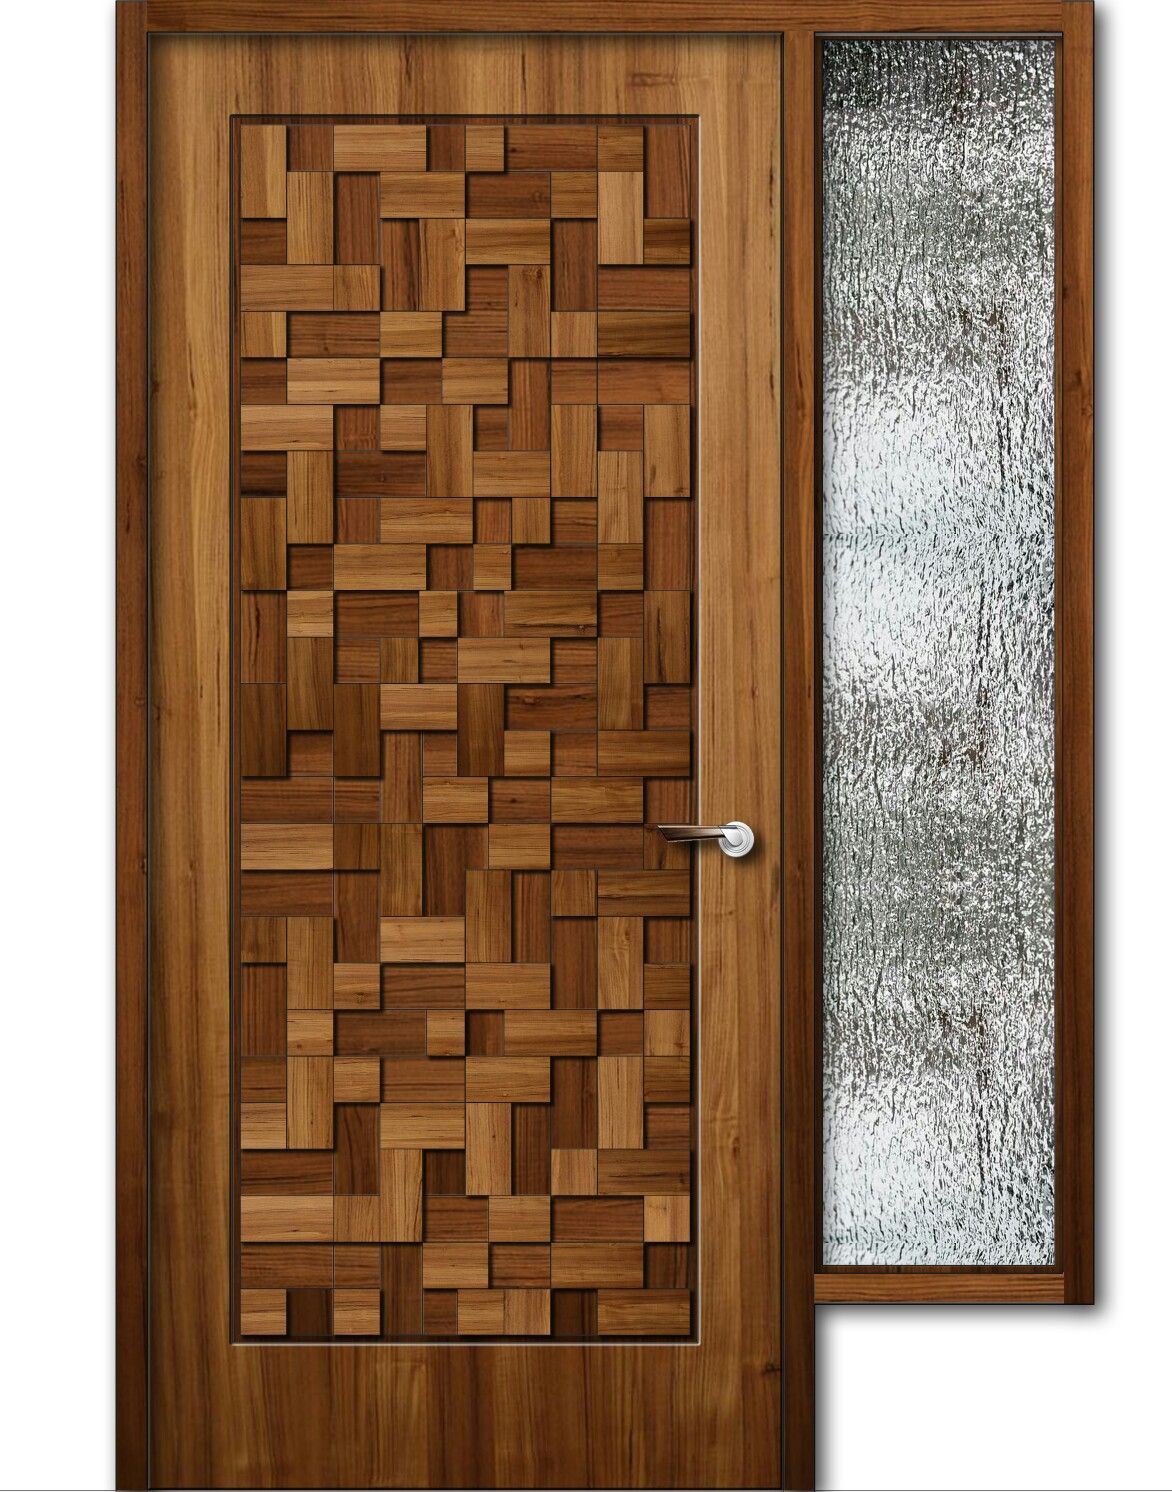 Teak wood finish wooden door with window 8feet height for Main door ideas